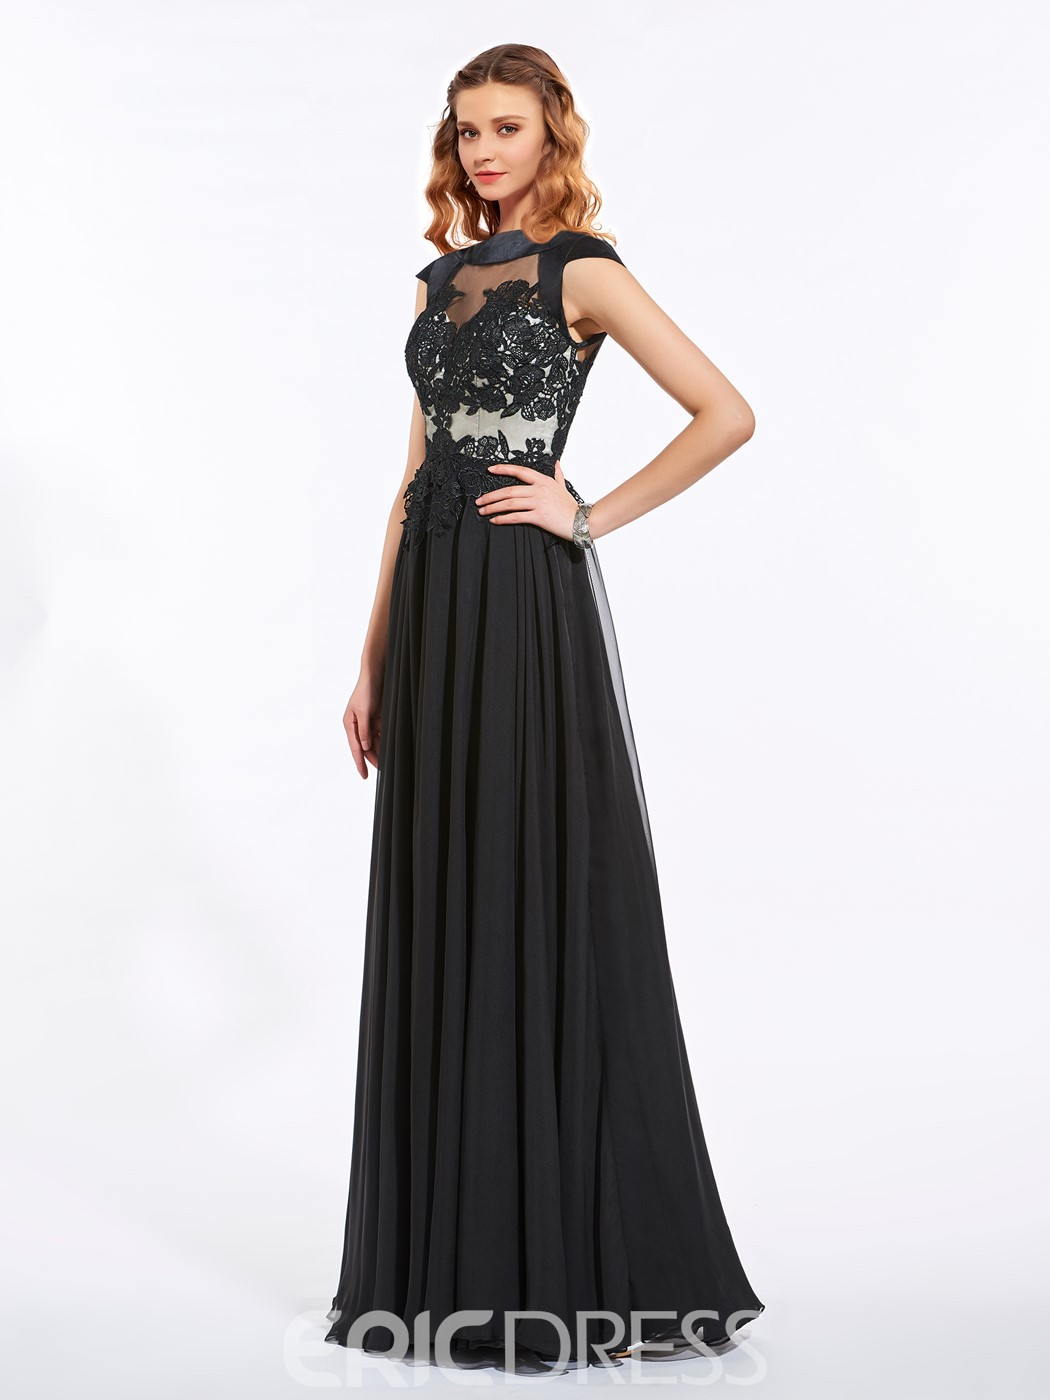 Ericdress A-Line Cap Sleeves Appliques Long Prom Dress With Zipper-Up Back